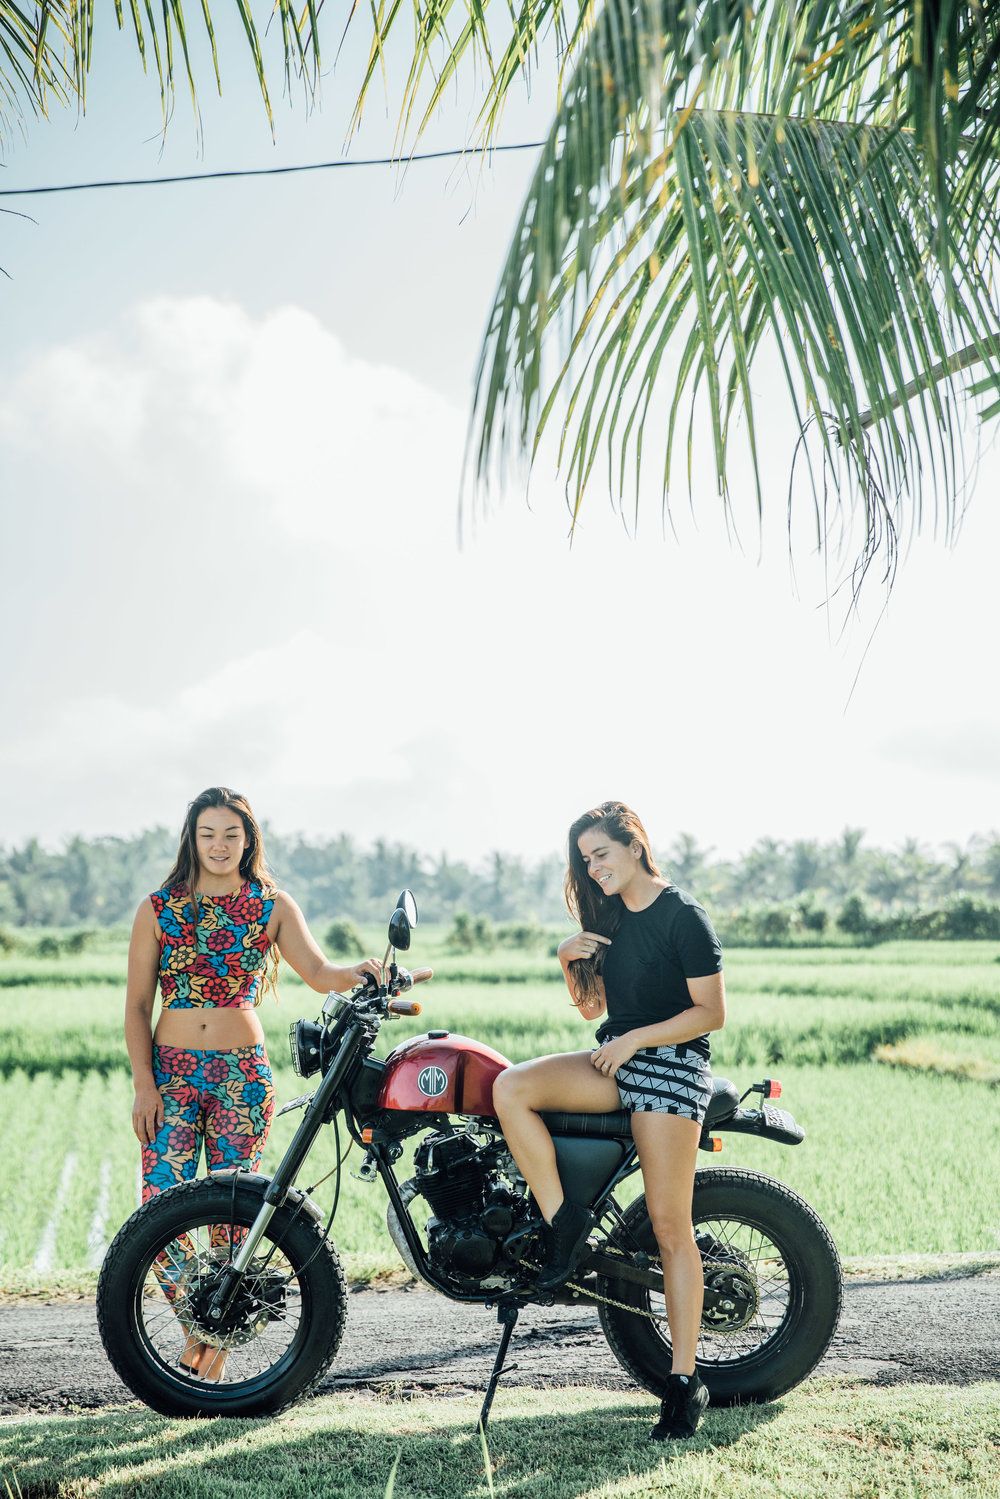 bryce johnson-photography-bali-seea-travel-rosie jaffurs-indonesia-surf-longboard-logging-uluwatu-drone-aloha travels-54.jpg